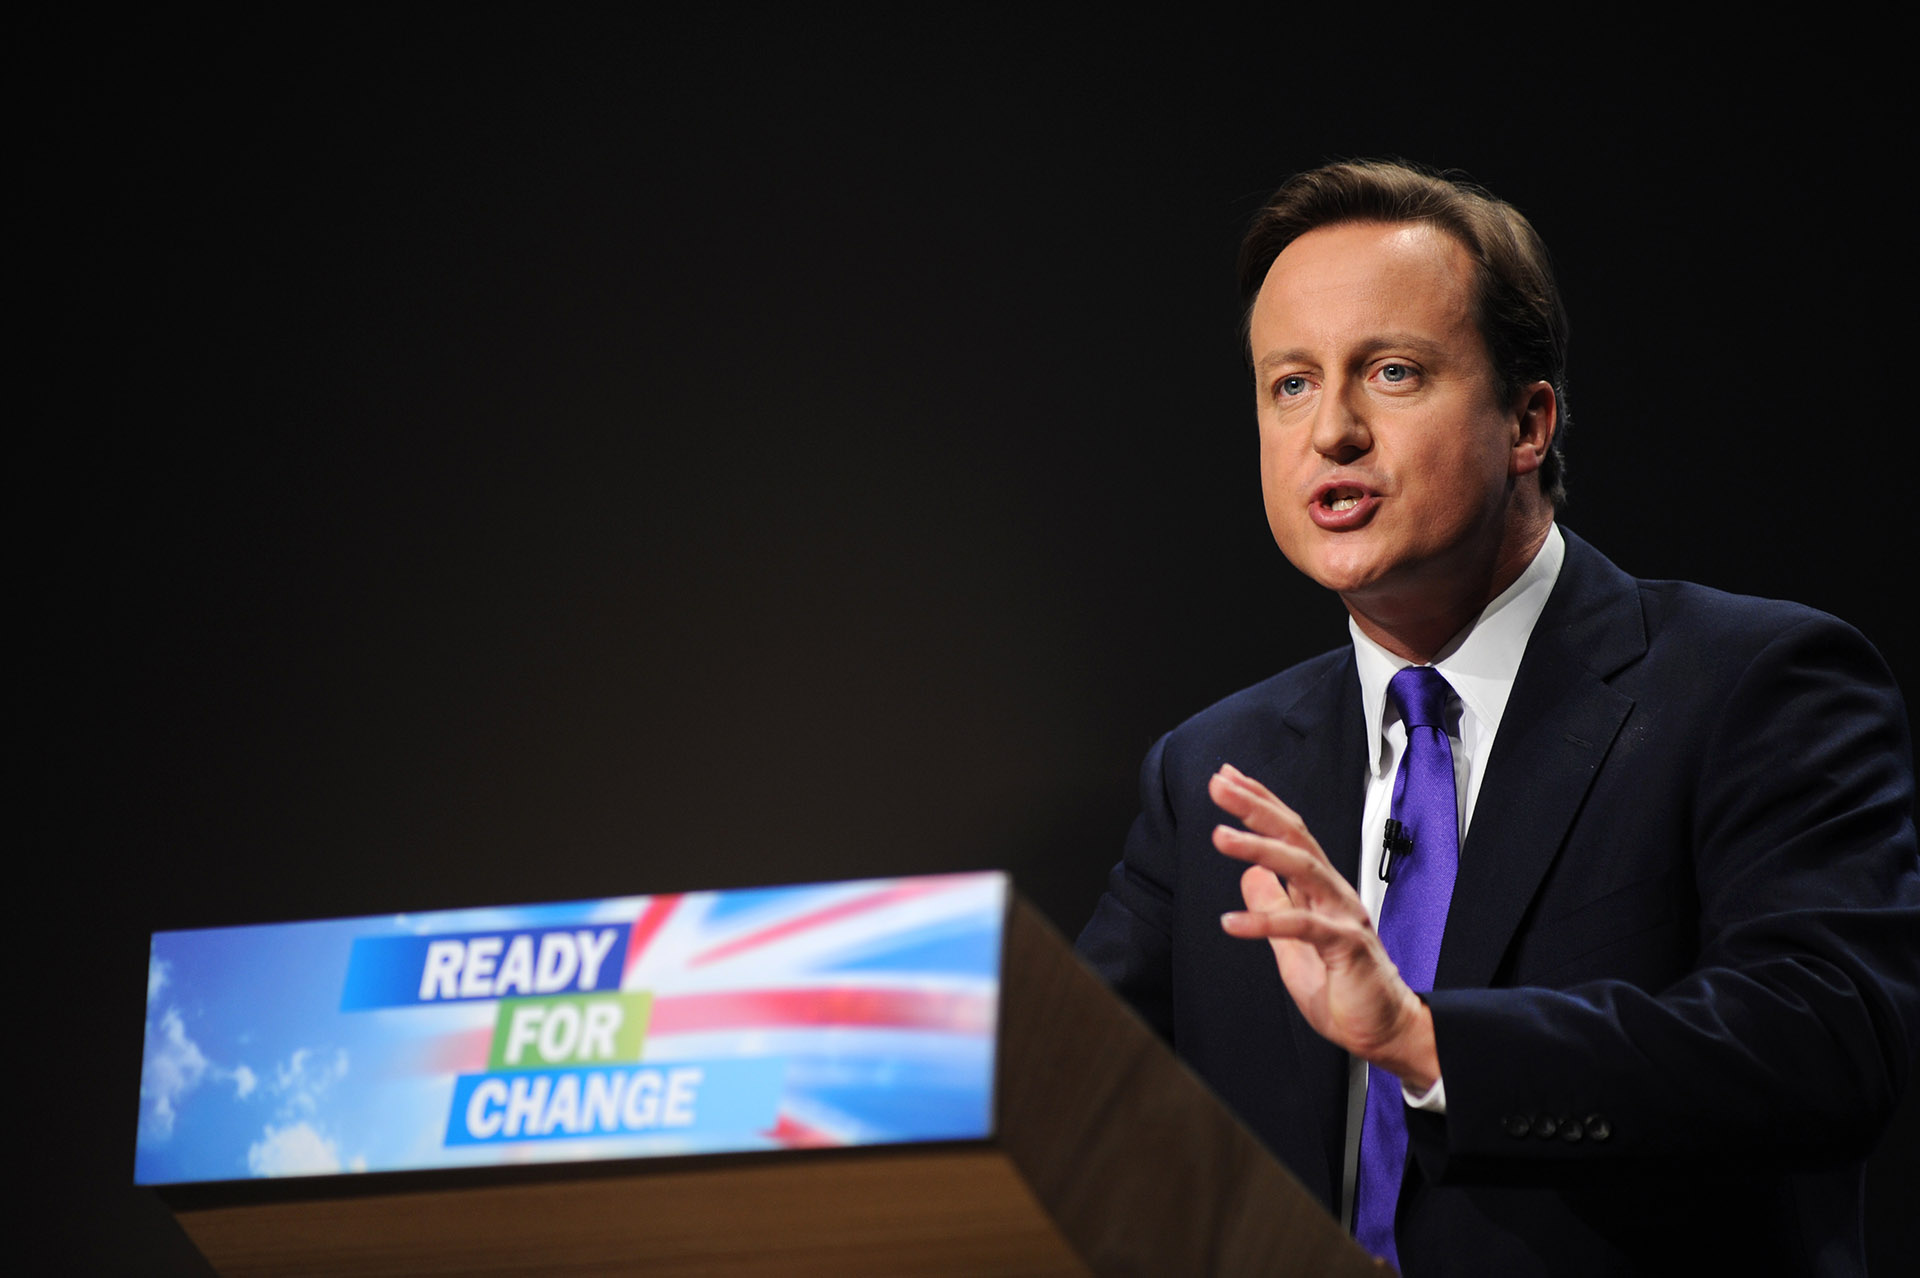 Photograph of David Cameron Speaking at Conservative Party Conference in Manchester, event photographer Jon Parker Lee